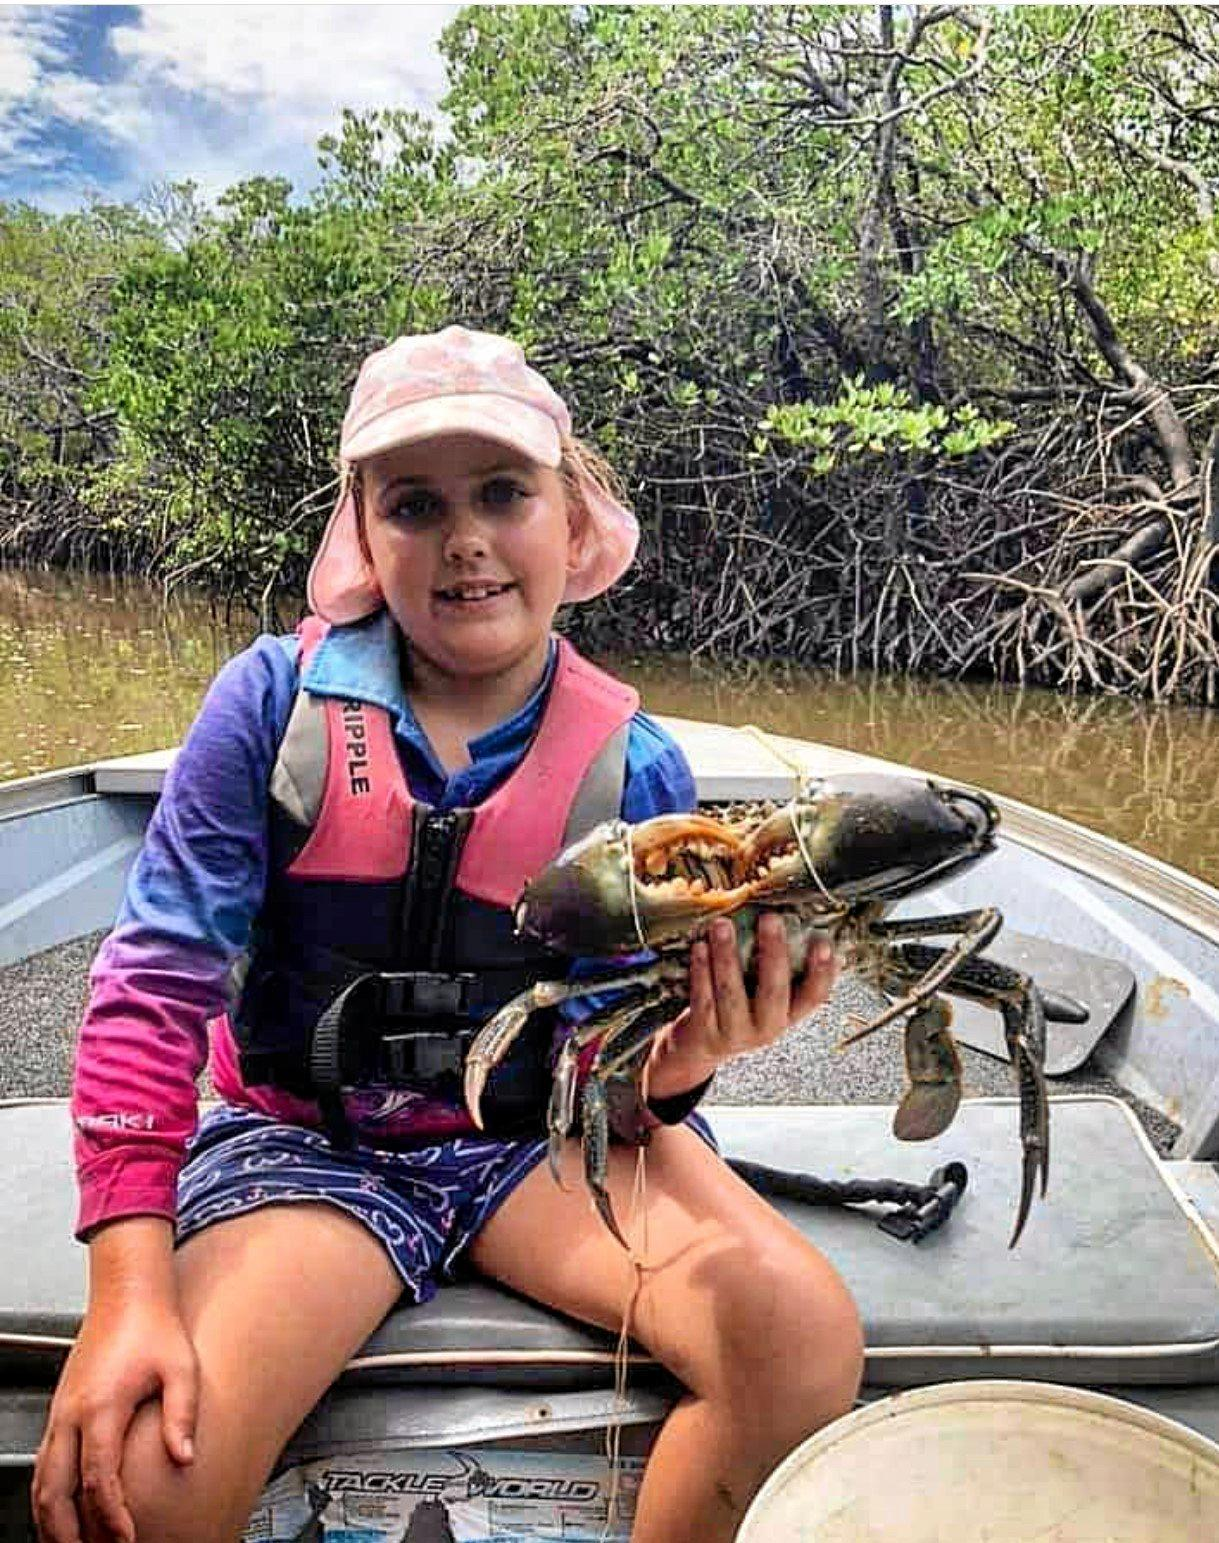 NOT TOO CRABBY: Lily Cheyne with a crab caught at Ballykeel (Sandy Creek).